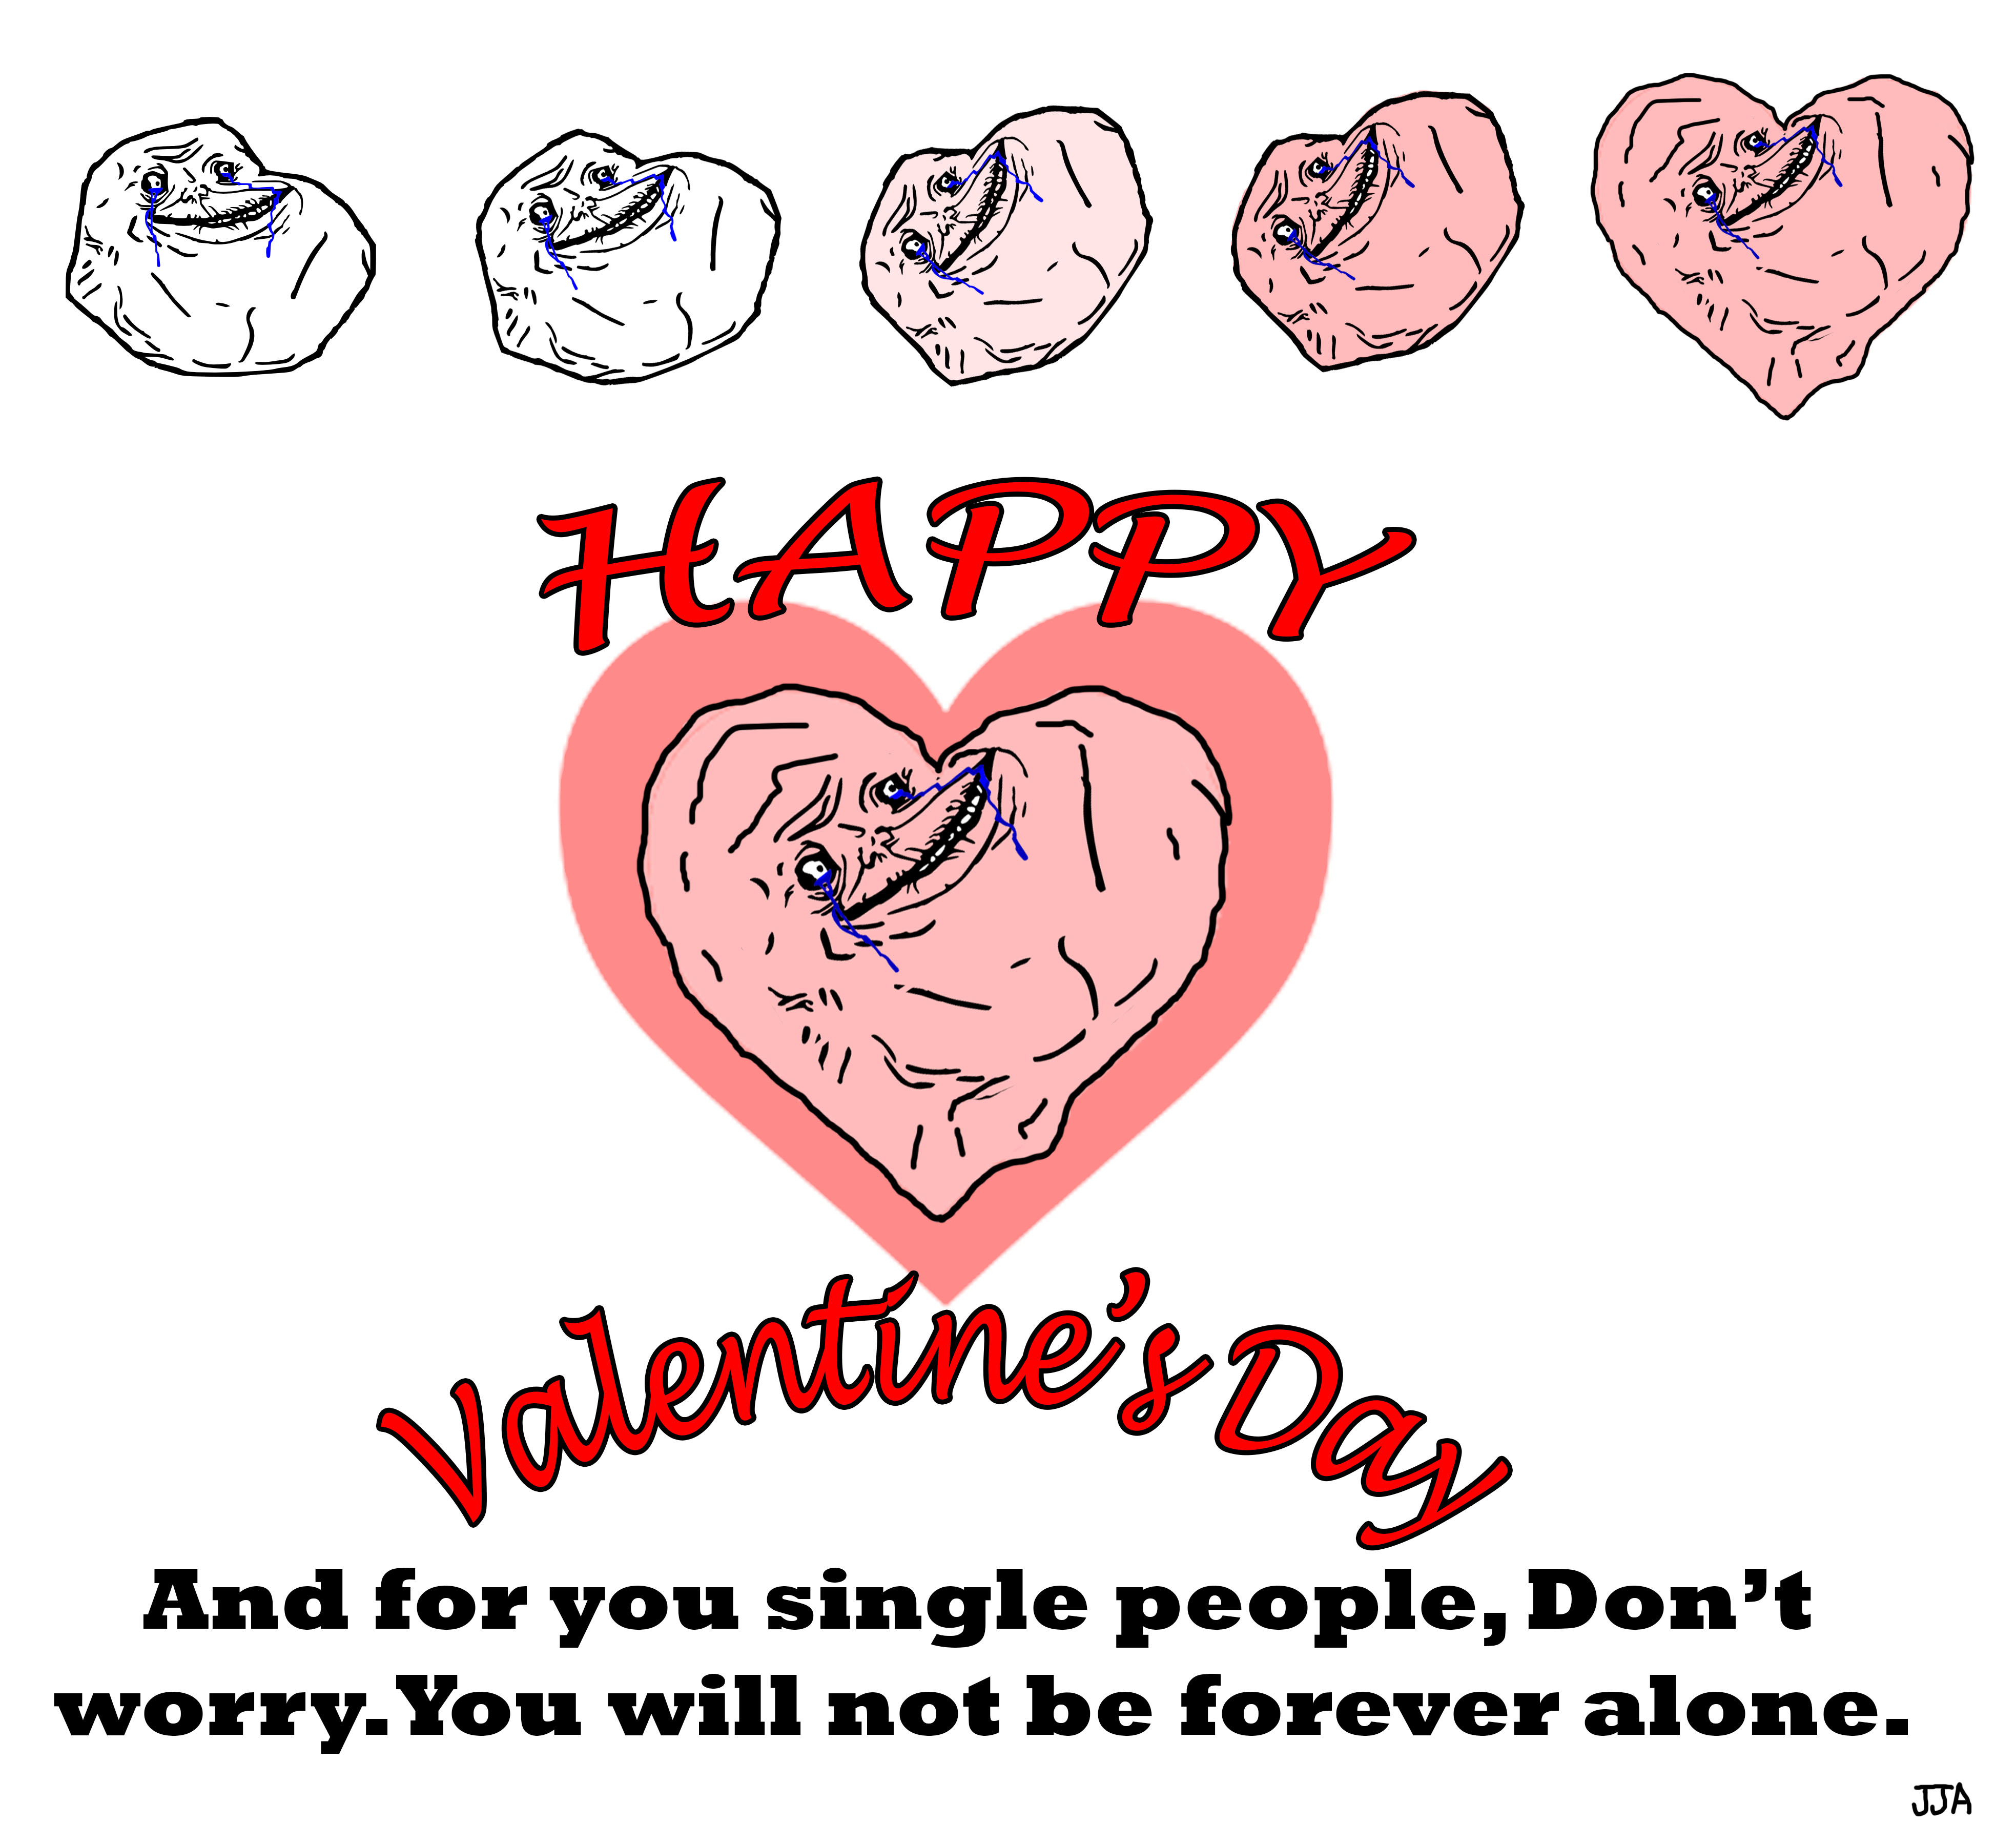 HAPP D For You Single People, Don Worry.You Wil Not Be Forever Alone